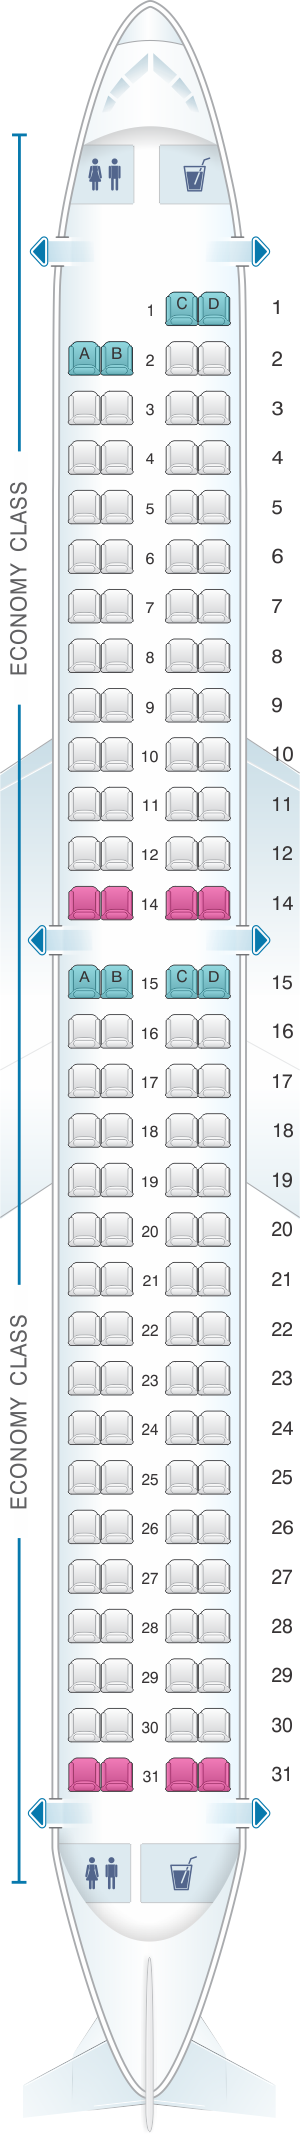 Seat map for AnadoluJet Embraer 195